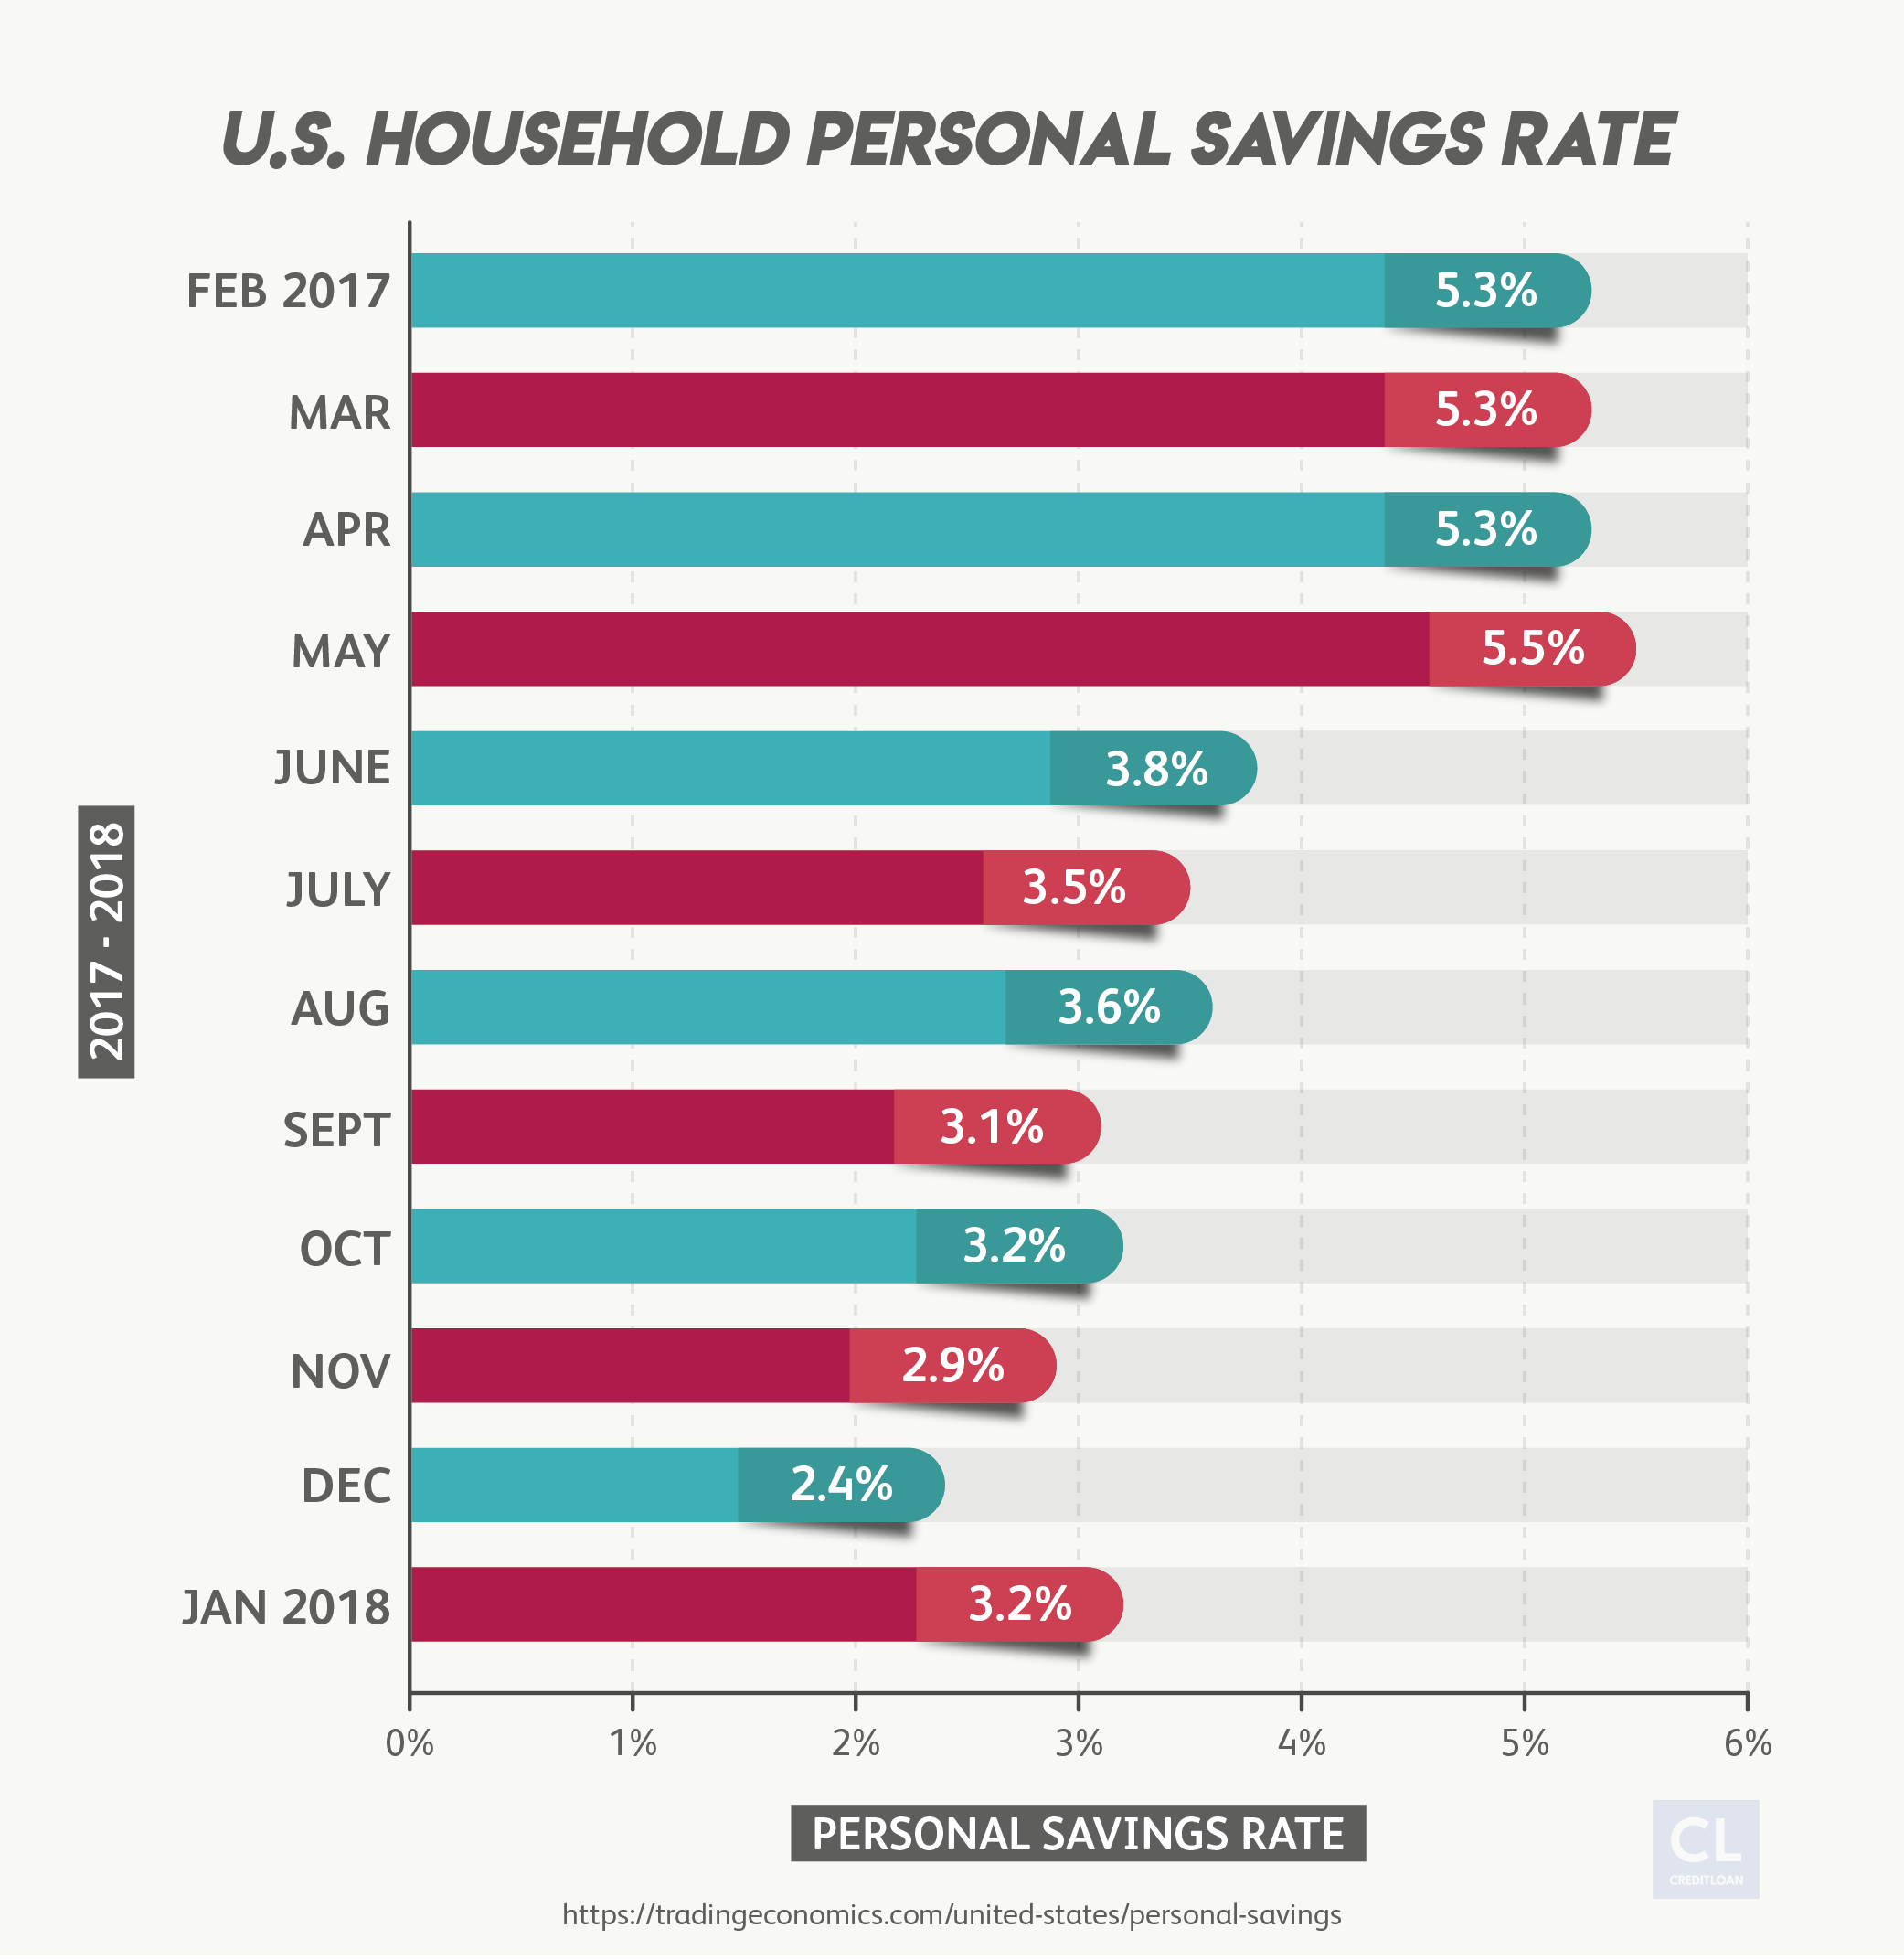 U.S. Household Personal Savings Rate from 2017-2018